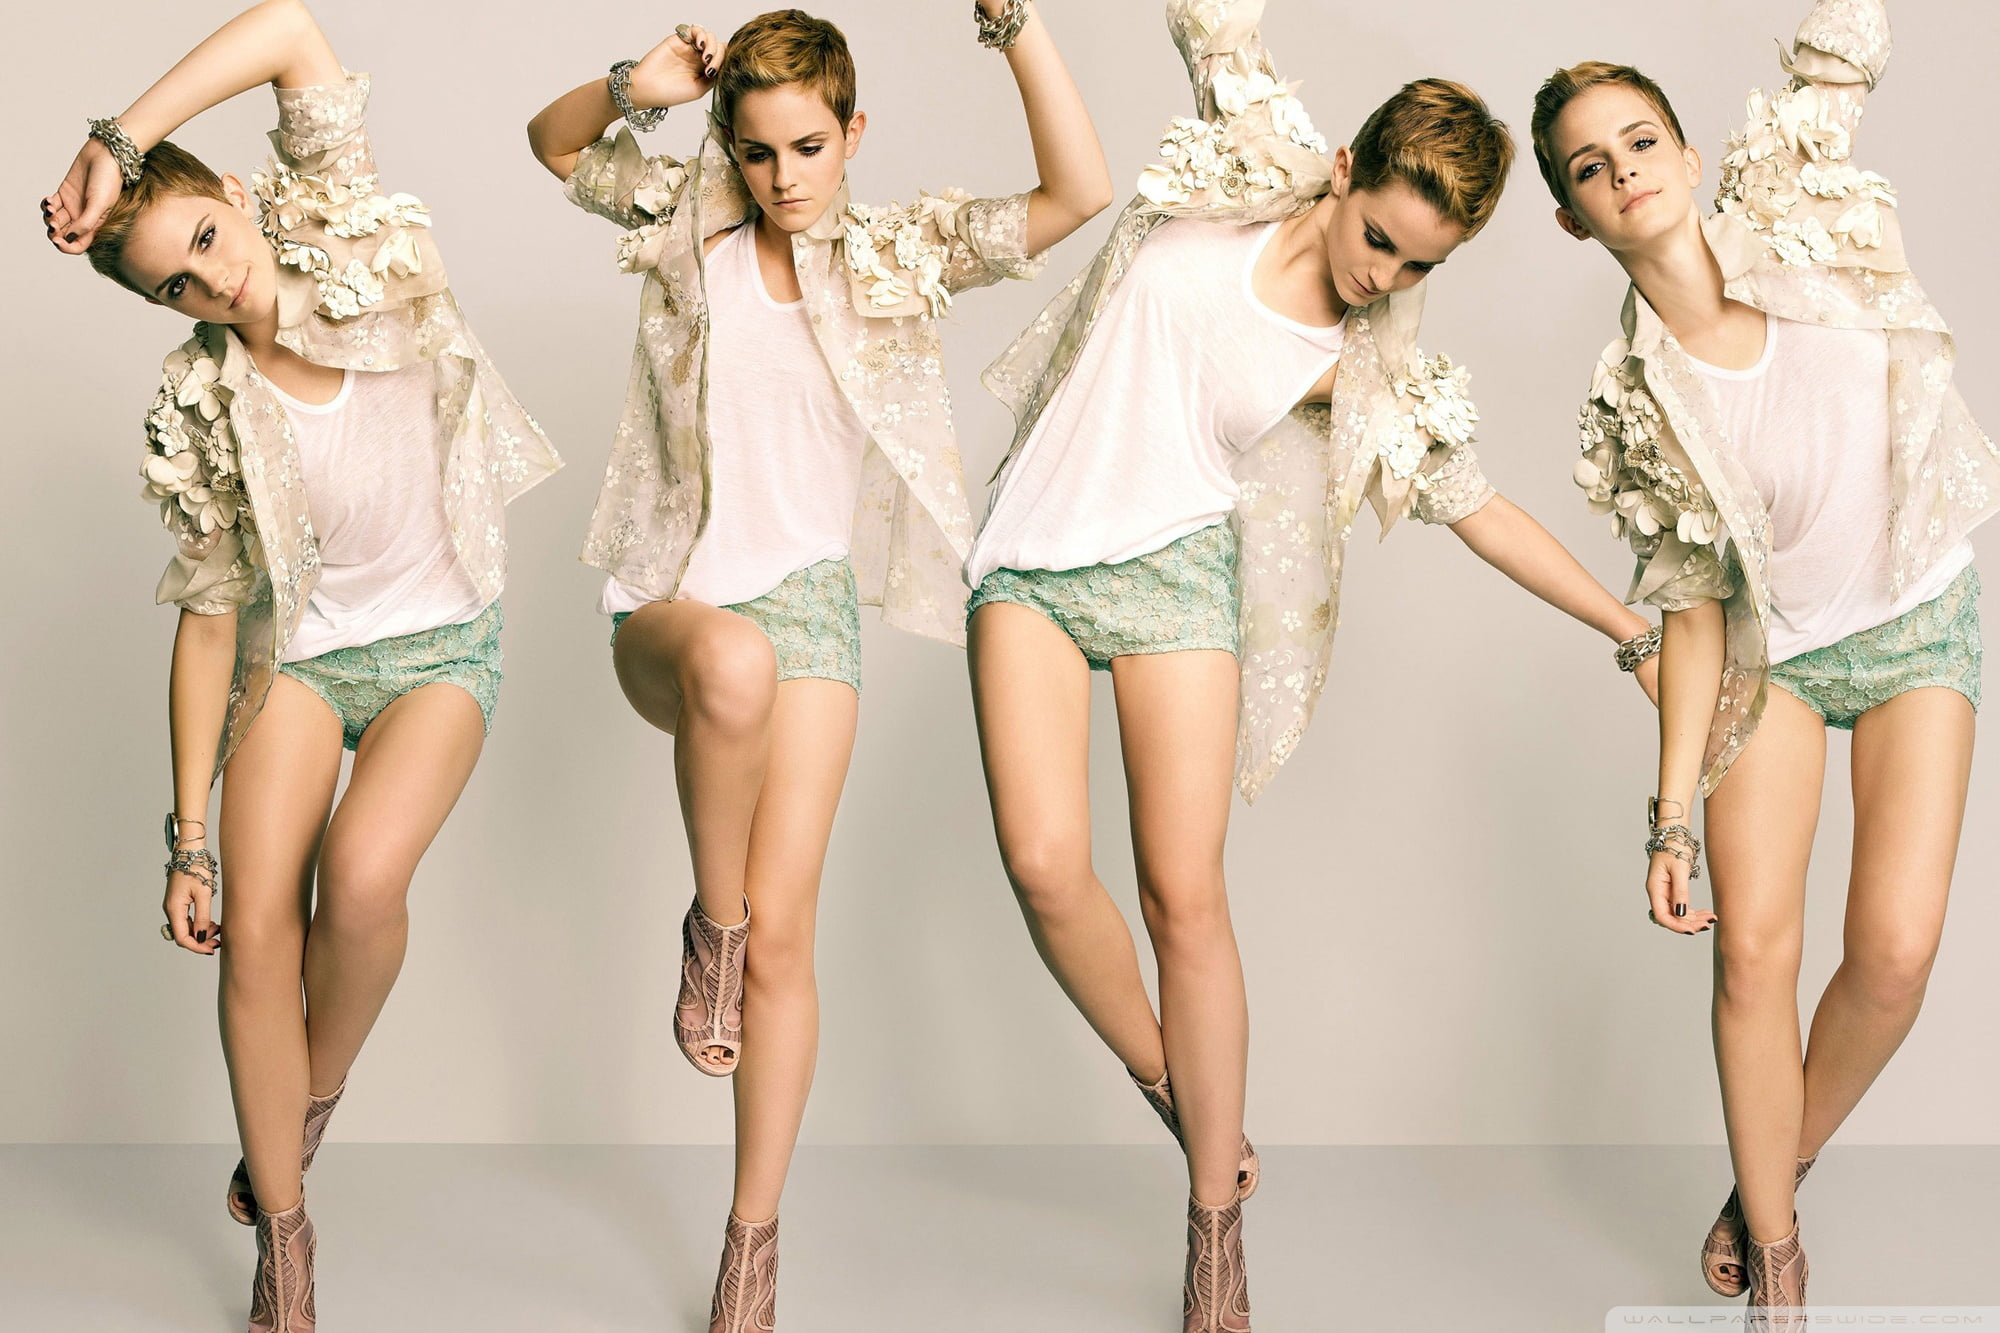 emma-watson-wallpapers-desktop-funny